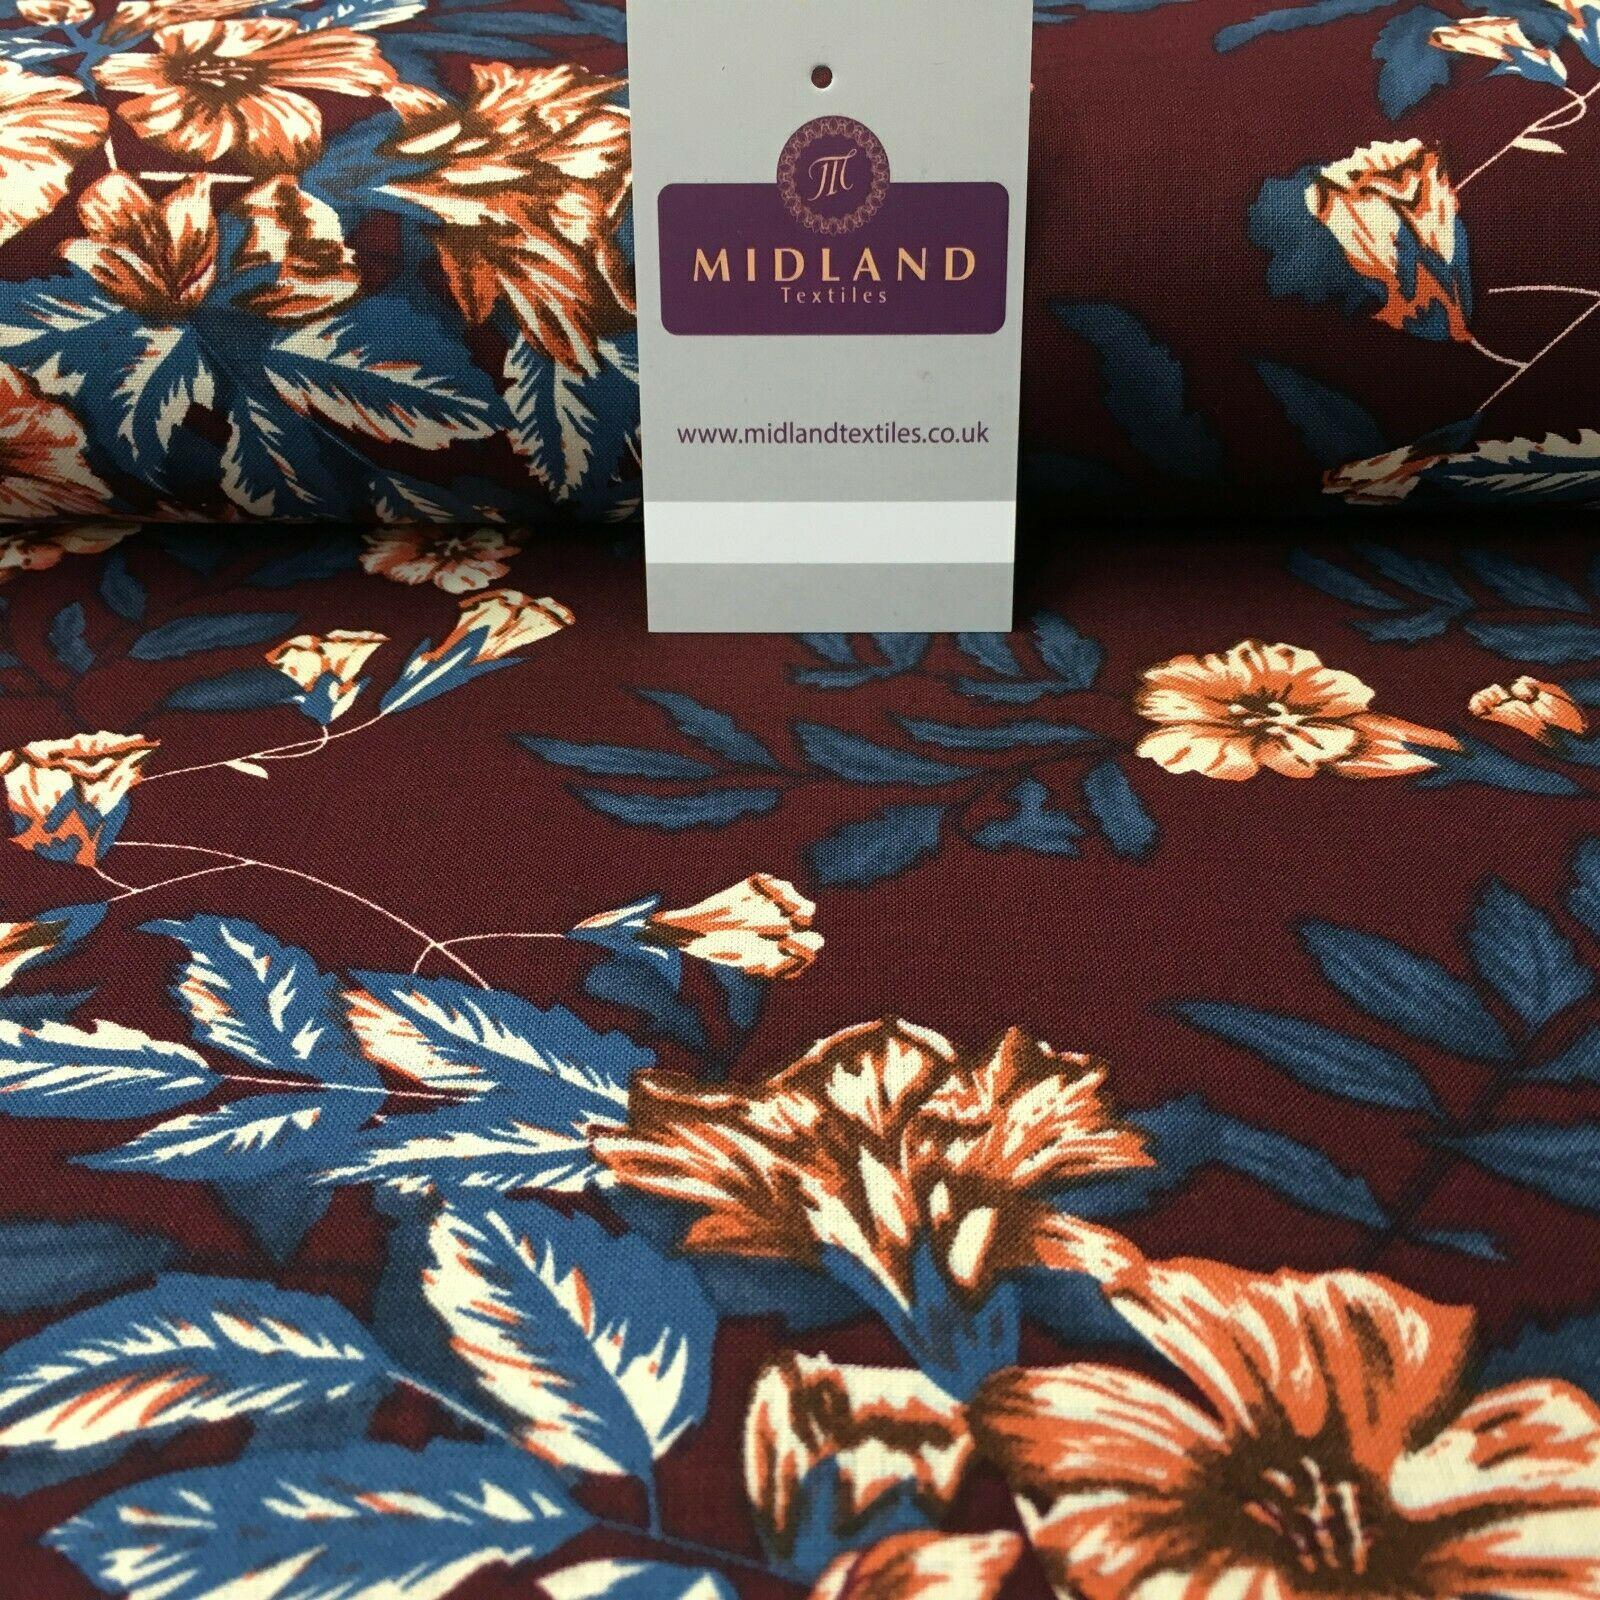 Wine Teal Floral Printed Cotton Linen Dress Fabric 150cm Wide MK1086-9